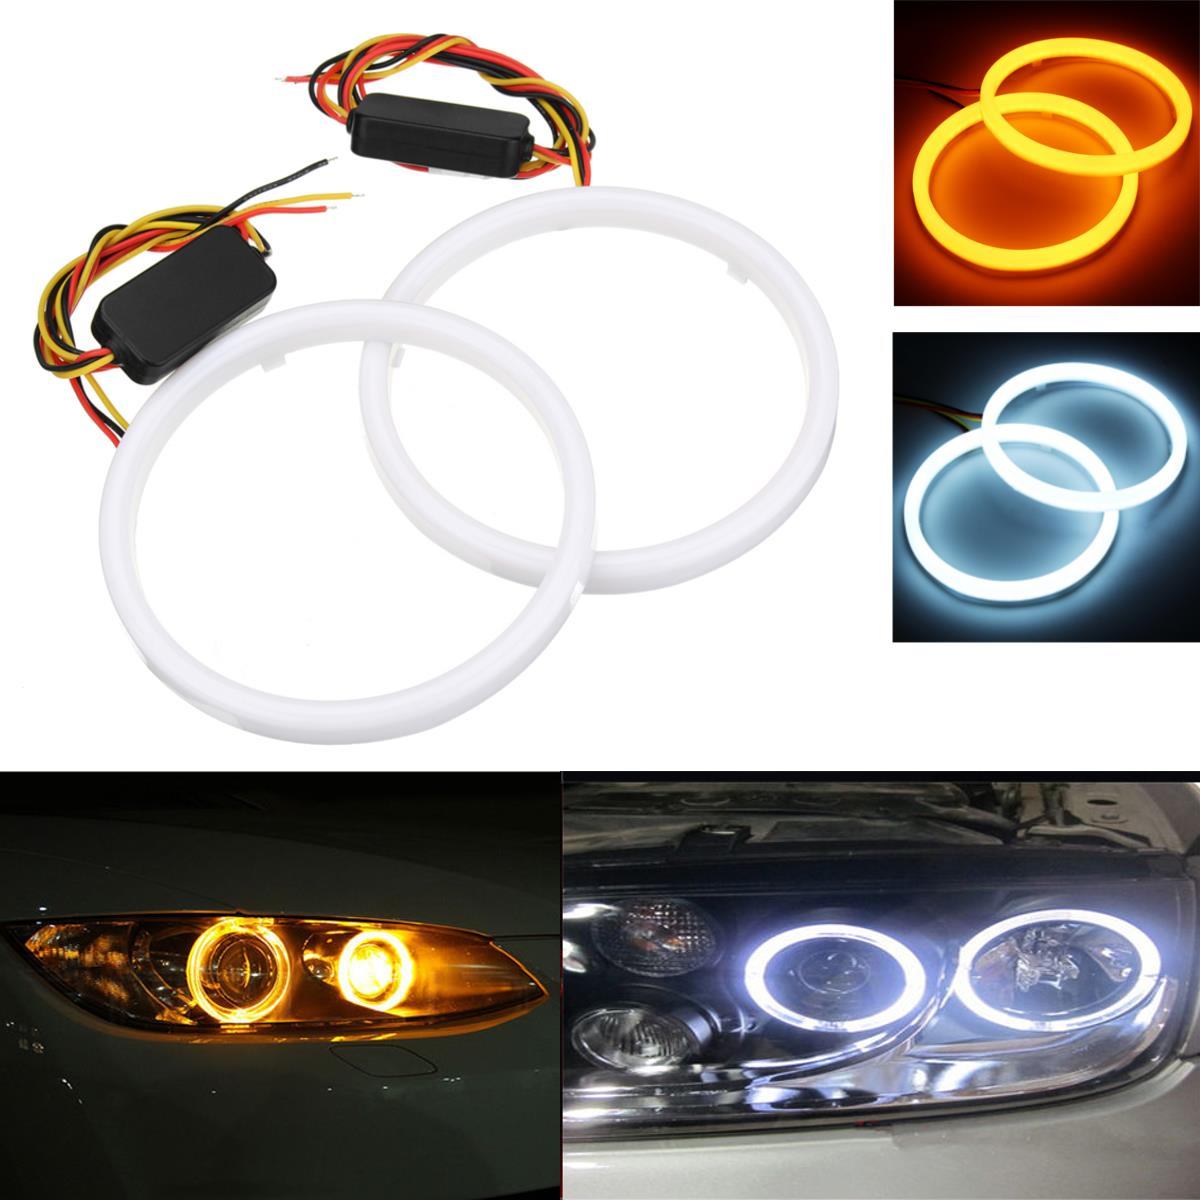 Coppia 60/70/80/90/100 / 110mm 2835 LED Angel Eyes Lights Halo Ring DRL Indicatore di direzione